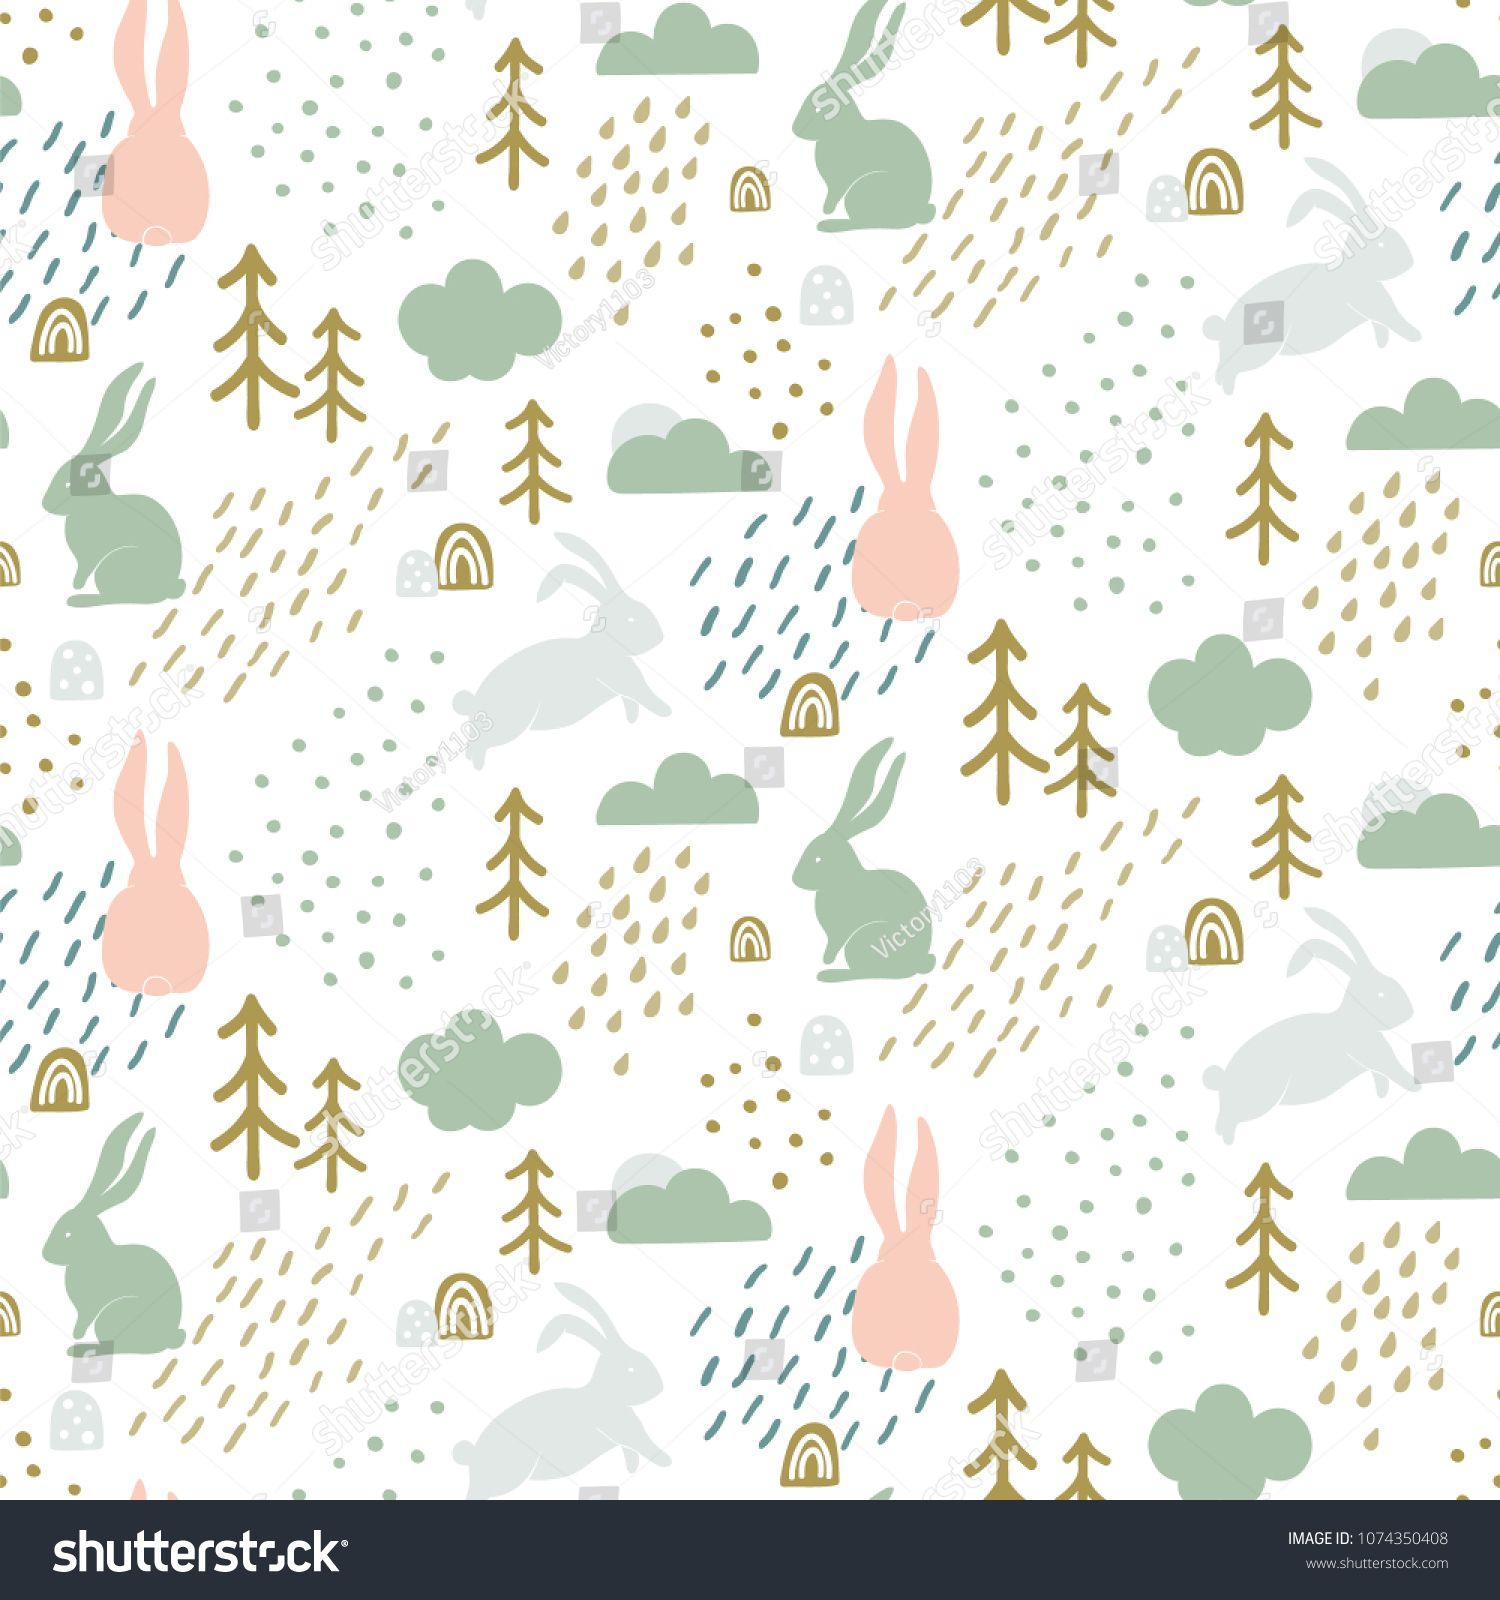 Seamless Childish Pattern With Cute Bunny Silhouette In Forest Scandinavian